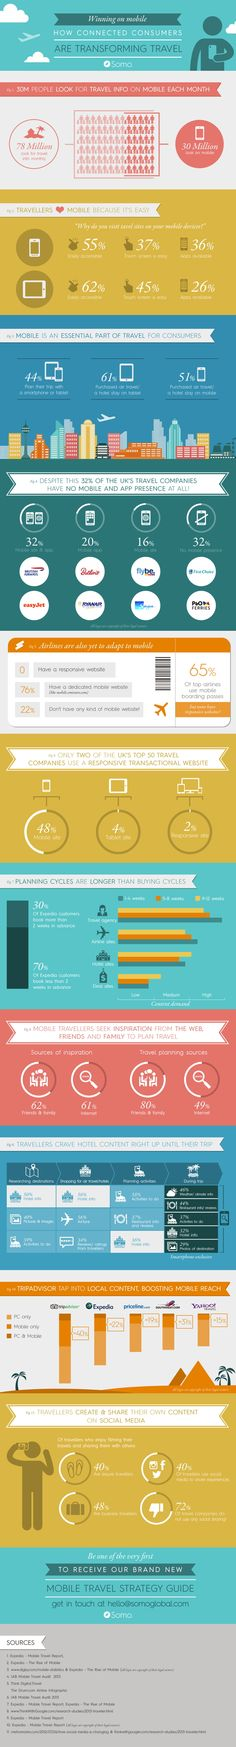 Travel Focus: INFOGRAPHIC: How connected consumers are transforming travel | Mobile Industry | Mobile Entertainment